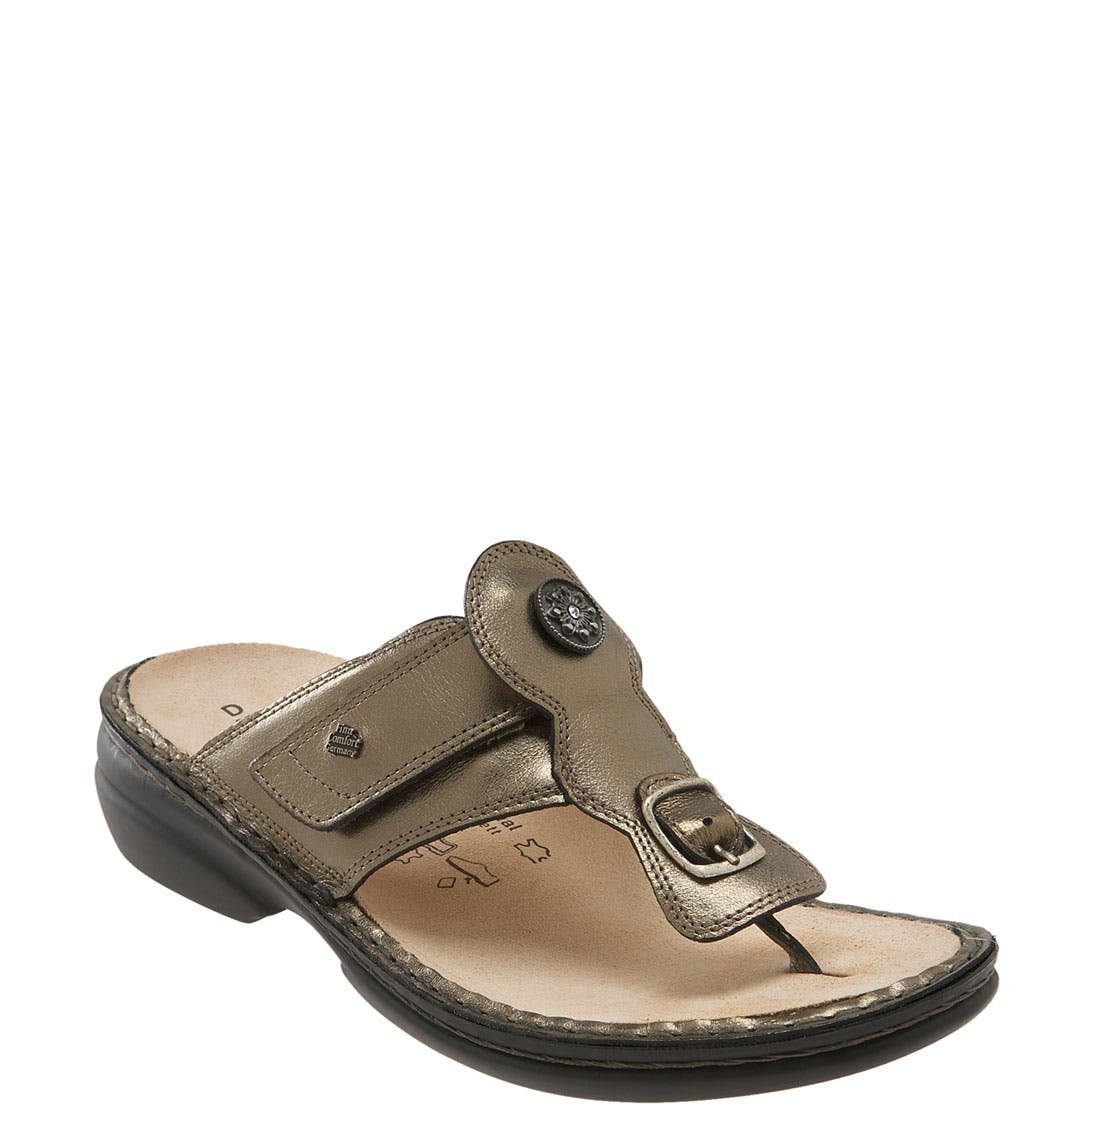 Alternate Image 1 Selected - Finn Comfort 'Wichita' Sandal